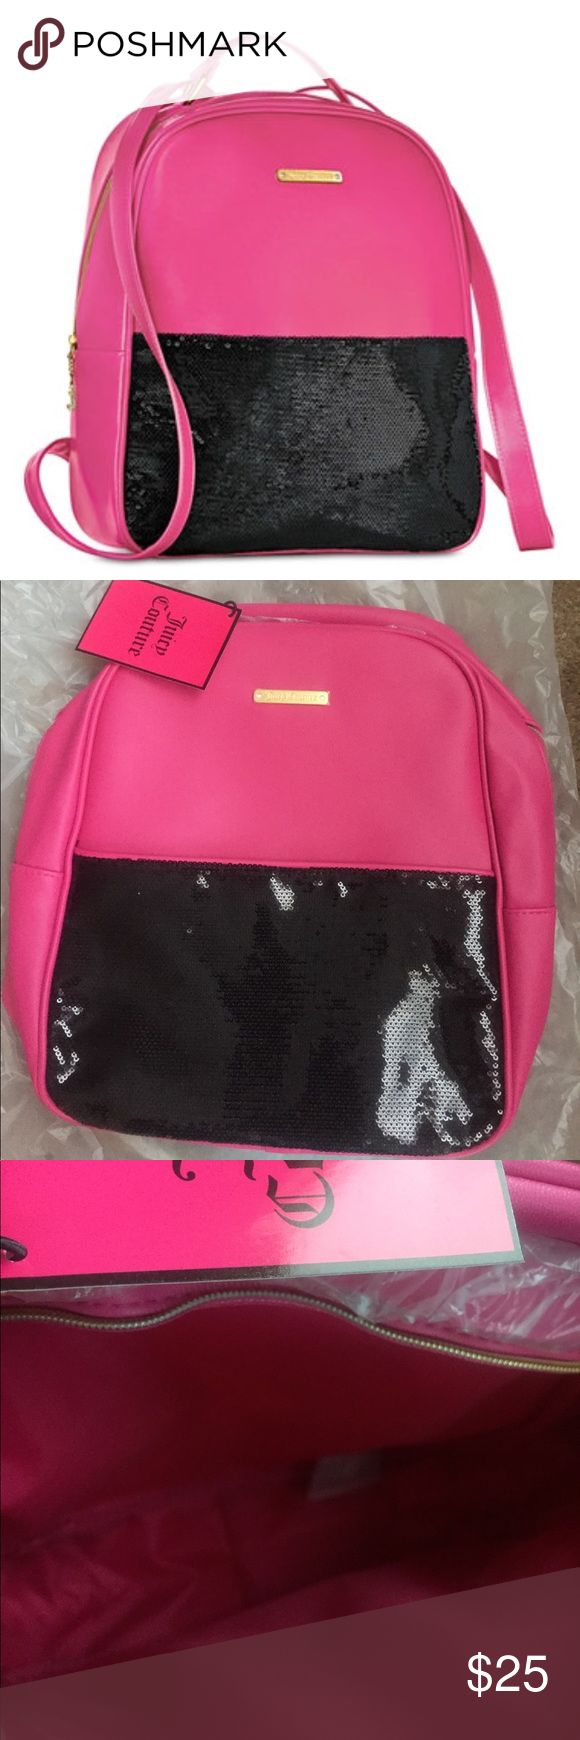 Juicy Couture sequins backpack New.  Pink with black sequins. Juicy Couture Bags Backpacks